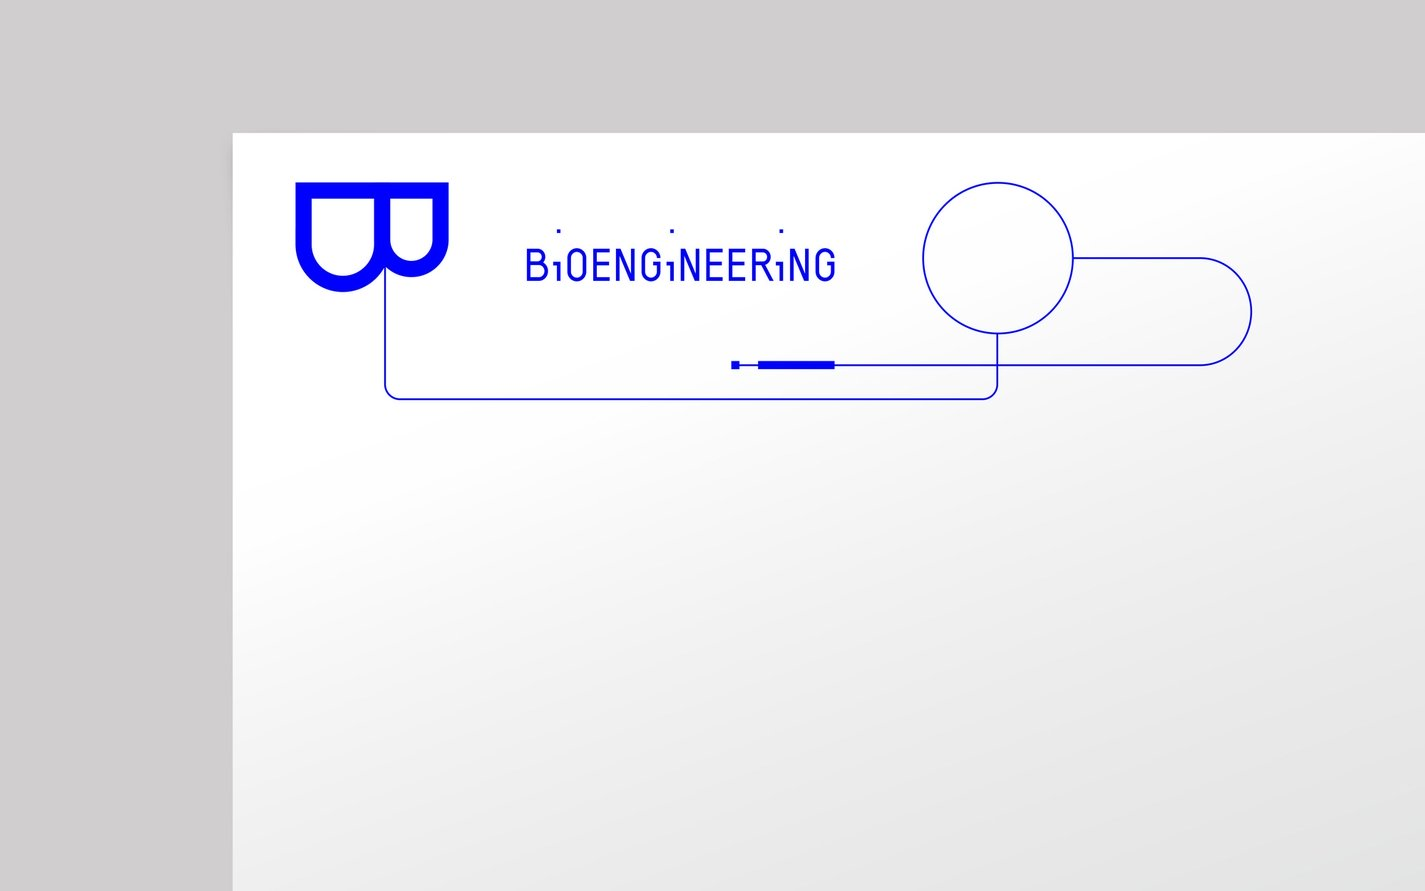 bob-design-bioengineering-branding16-33752.jpg